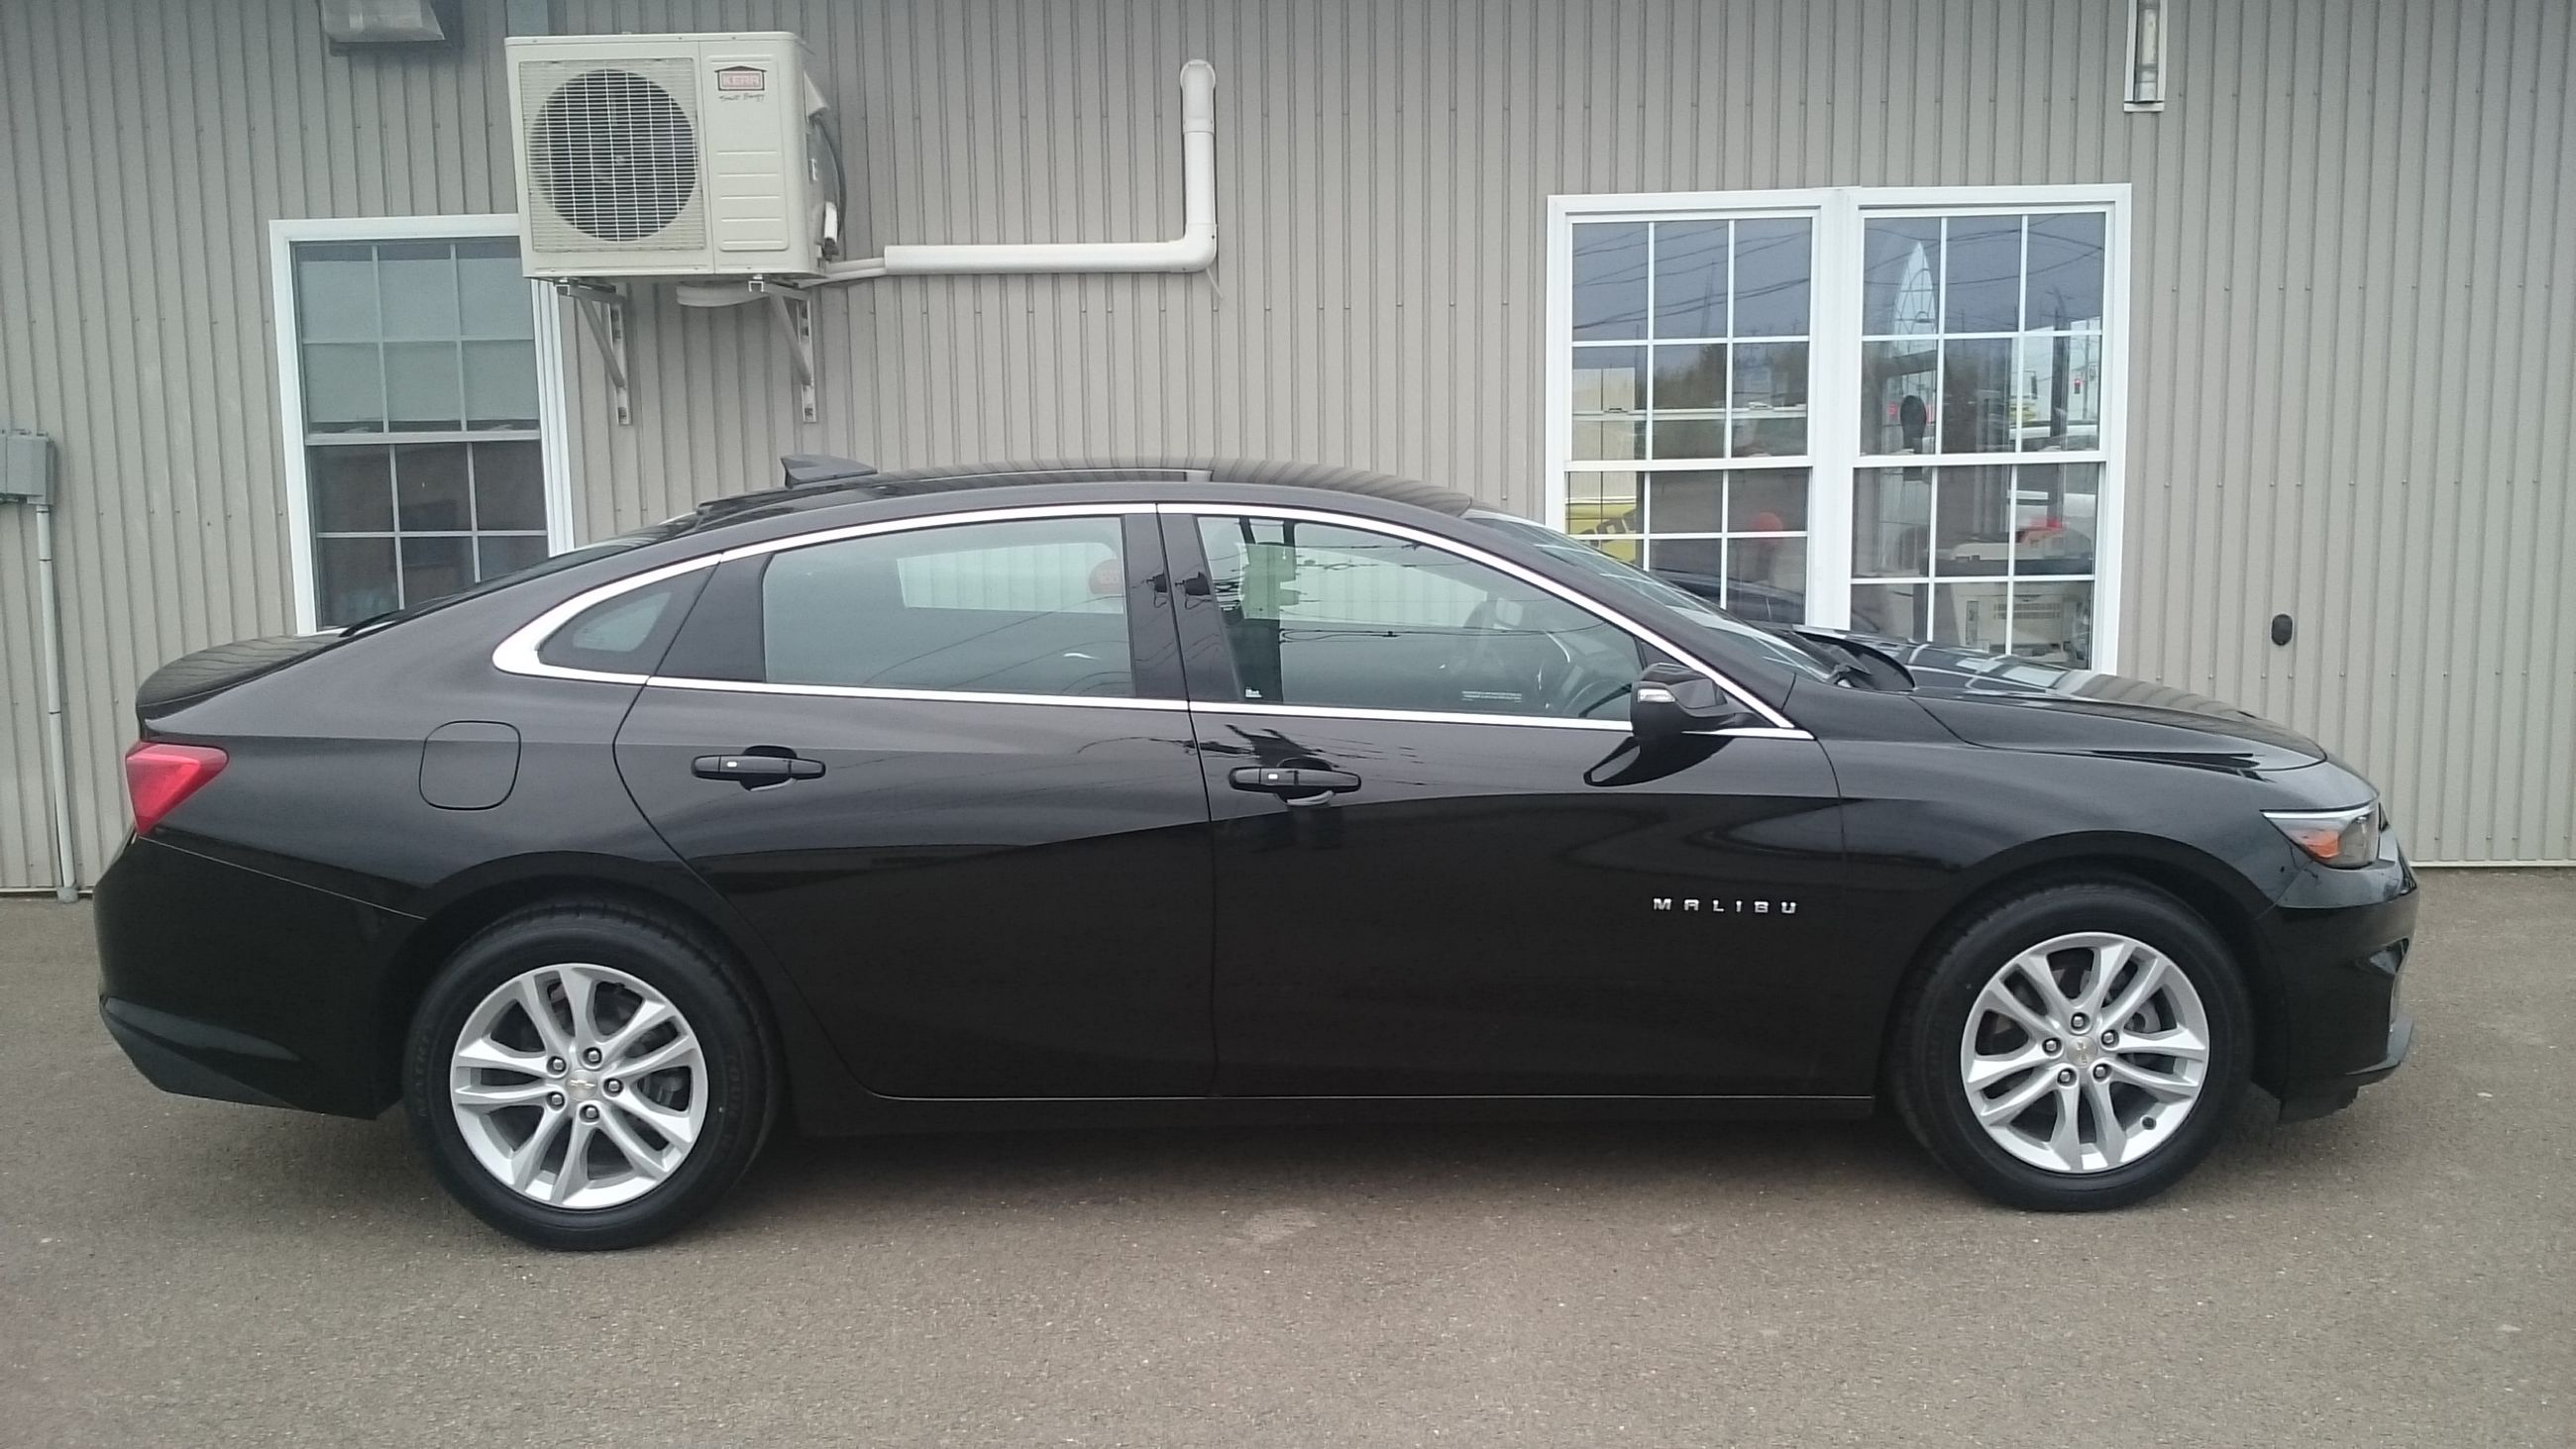 used 2016 chevrolet malibu lt in fredericton used inventory fredericton kia in fredericton. Black Bedroom Furniture Sets. Home Design Ideas